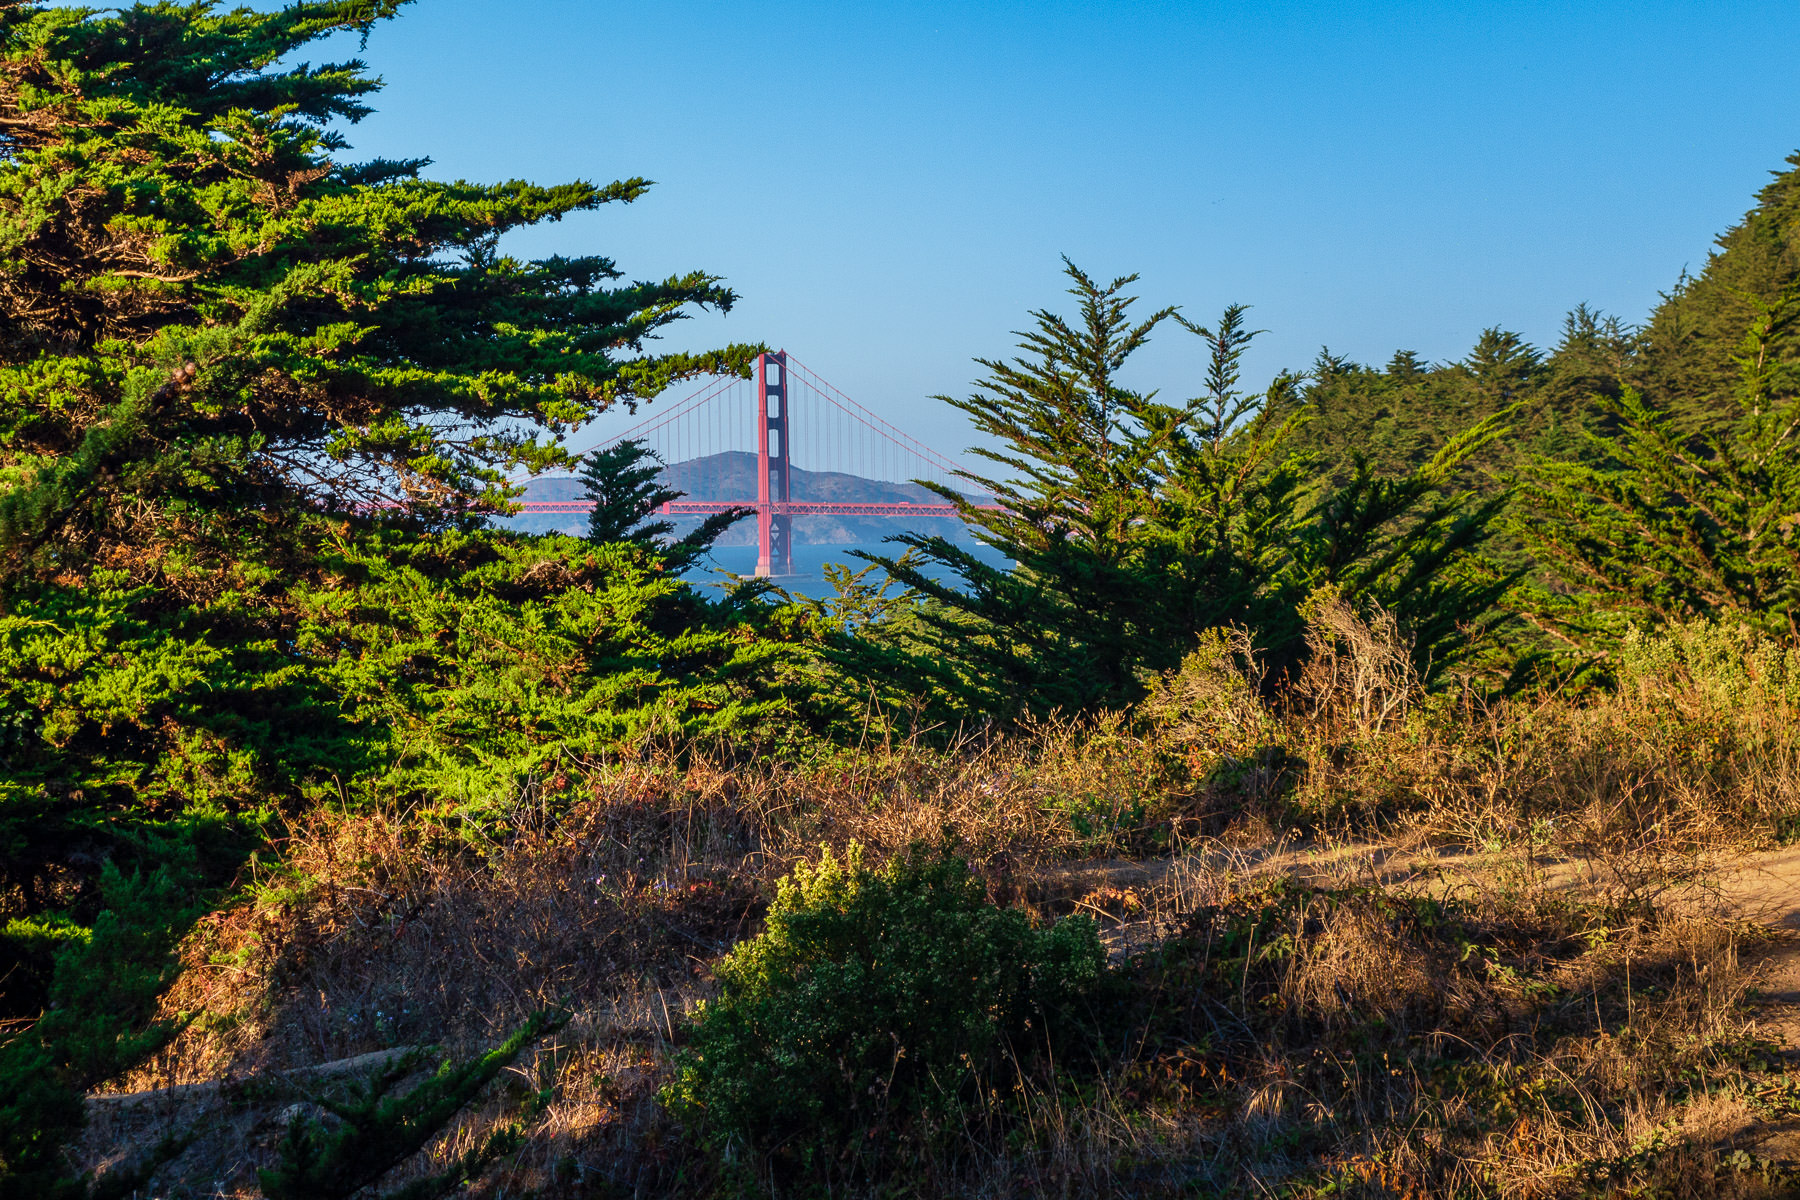 San Francisco's iconic Golden Gate Bridge, as seen from through the trees along nearby Sea Cliff.